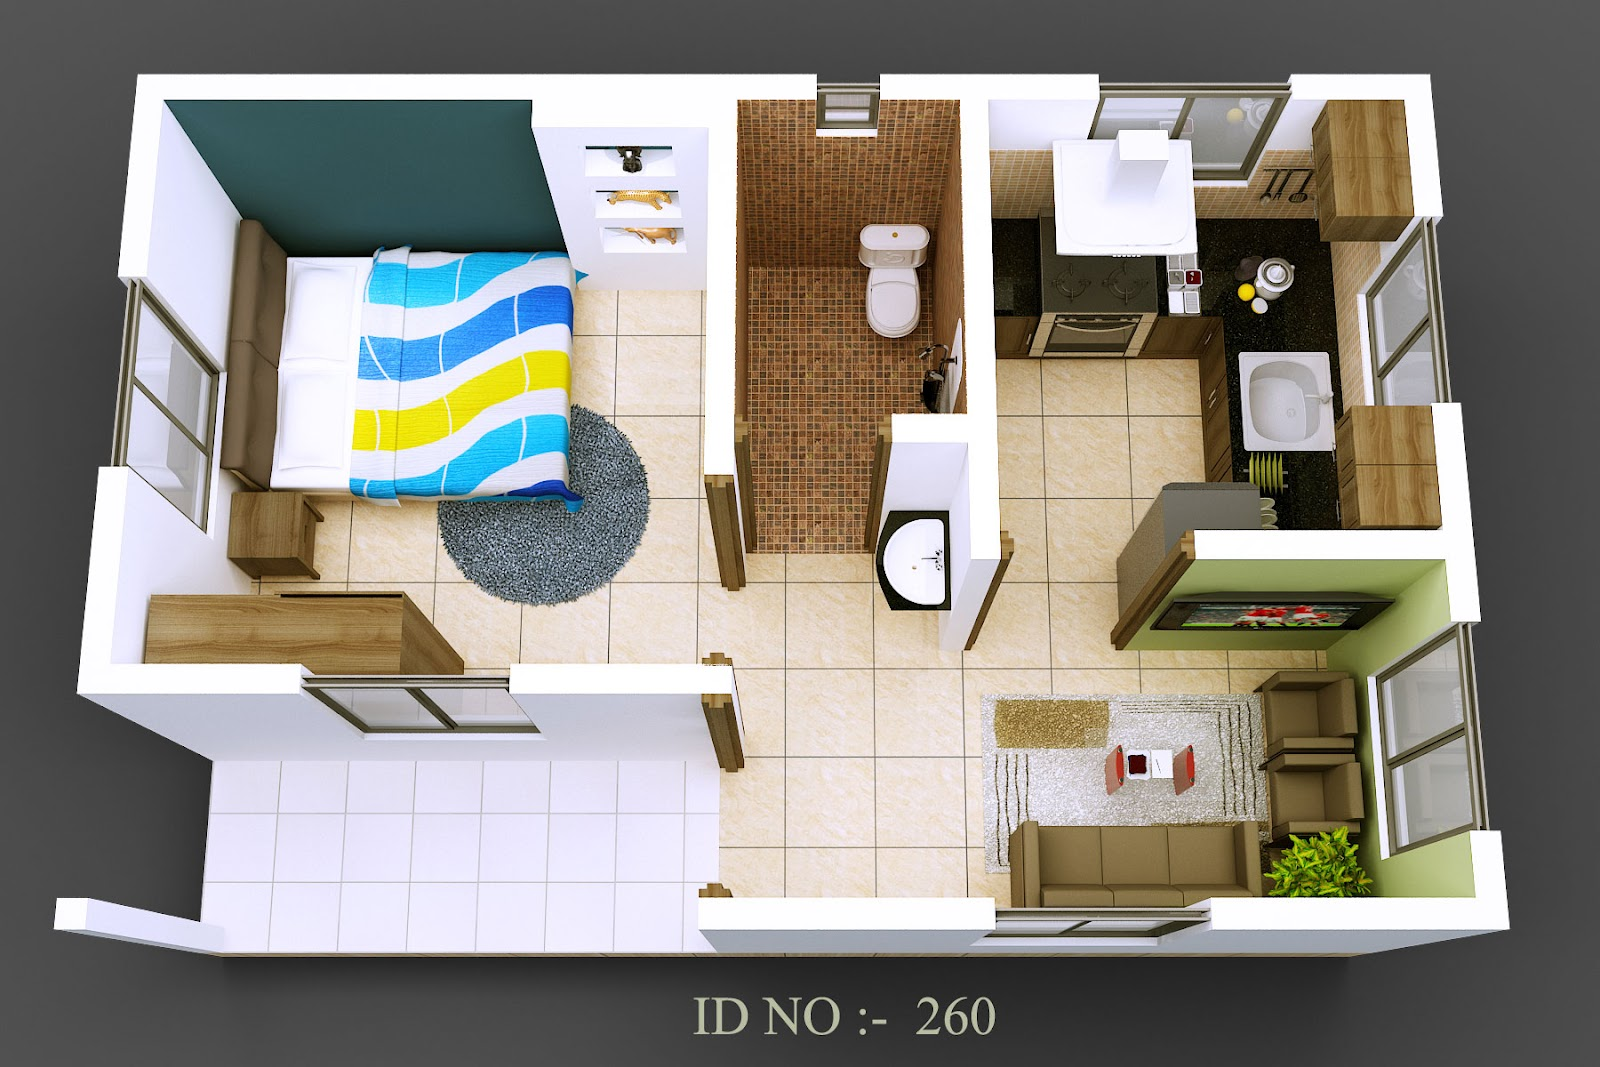 ... for the Virtual Decorator free 3D Home Design Software package